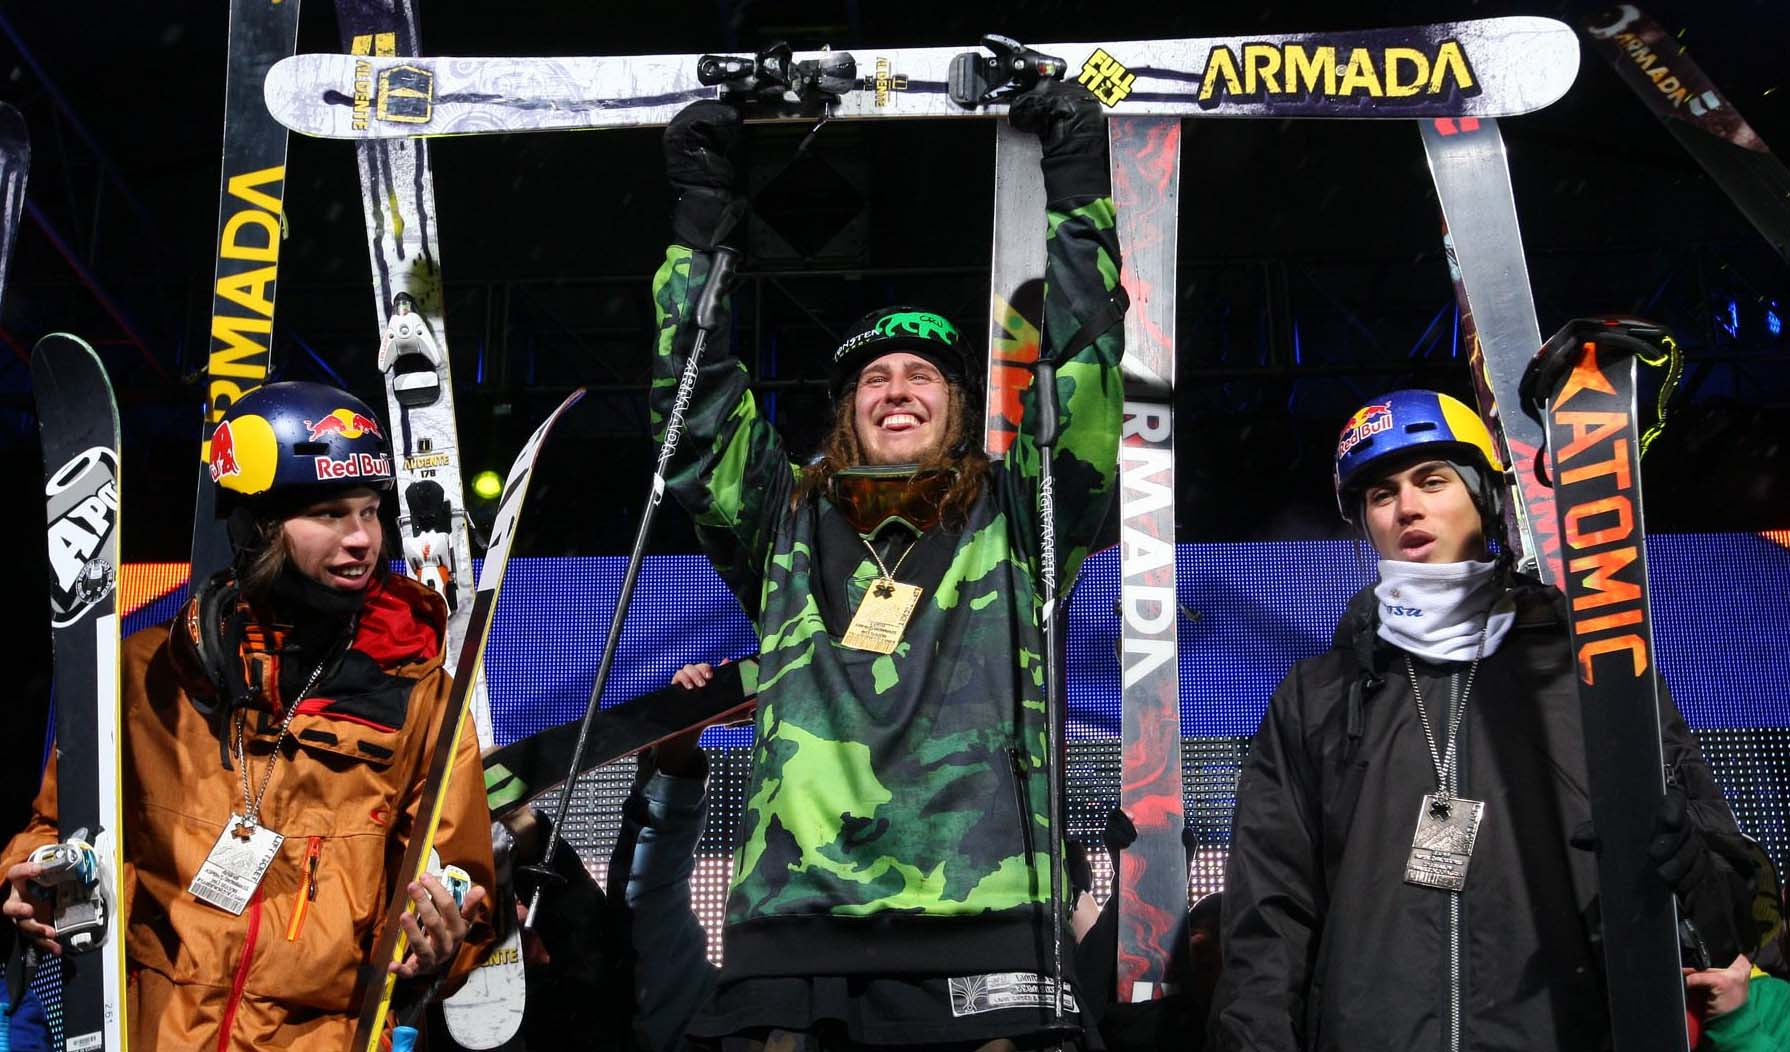 Kai Mahler, Henrik Harlaut, and Elias Ambuhl on the X Games Ski Big Air podium. PHOTO: COURTESY OF ESPN